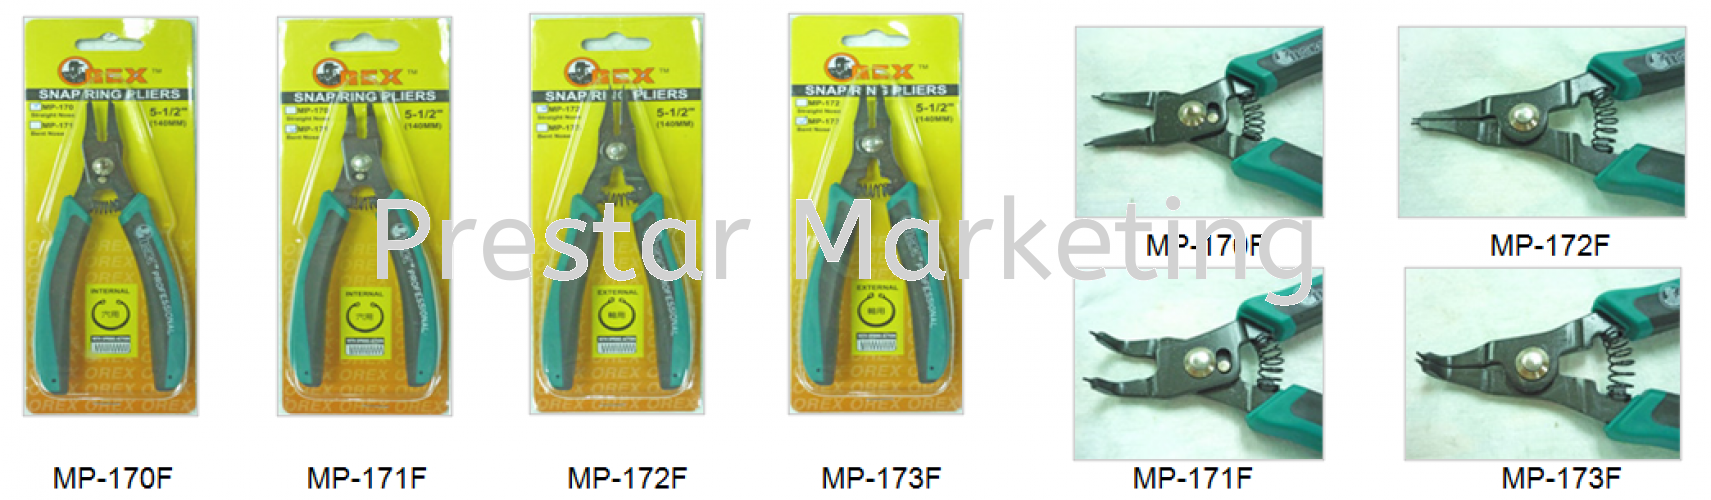 MP170F SERIES SNAP RING PLIERS